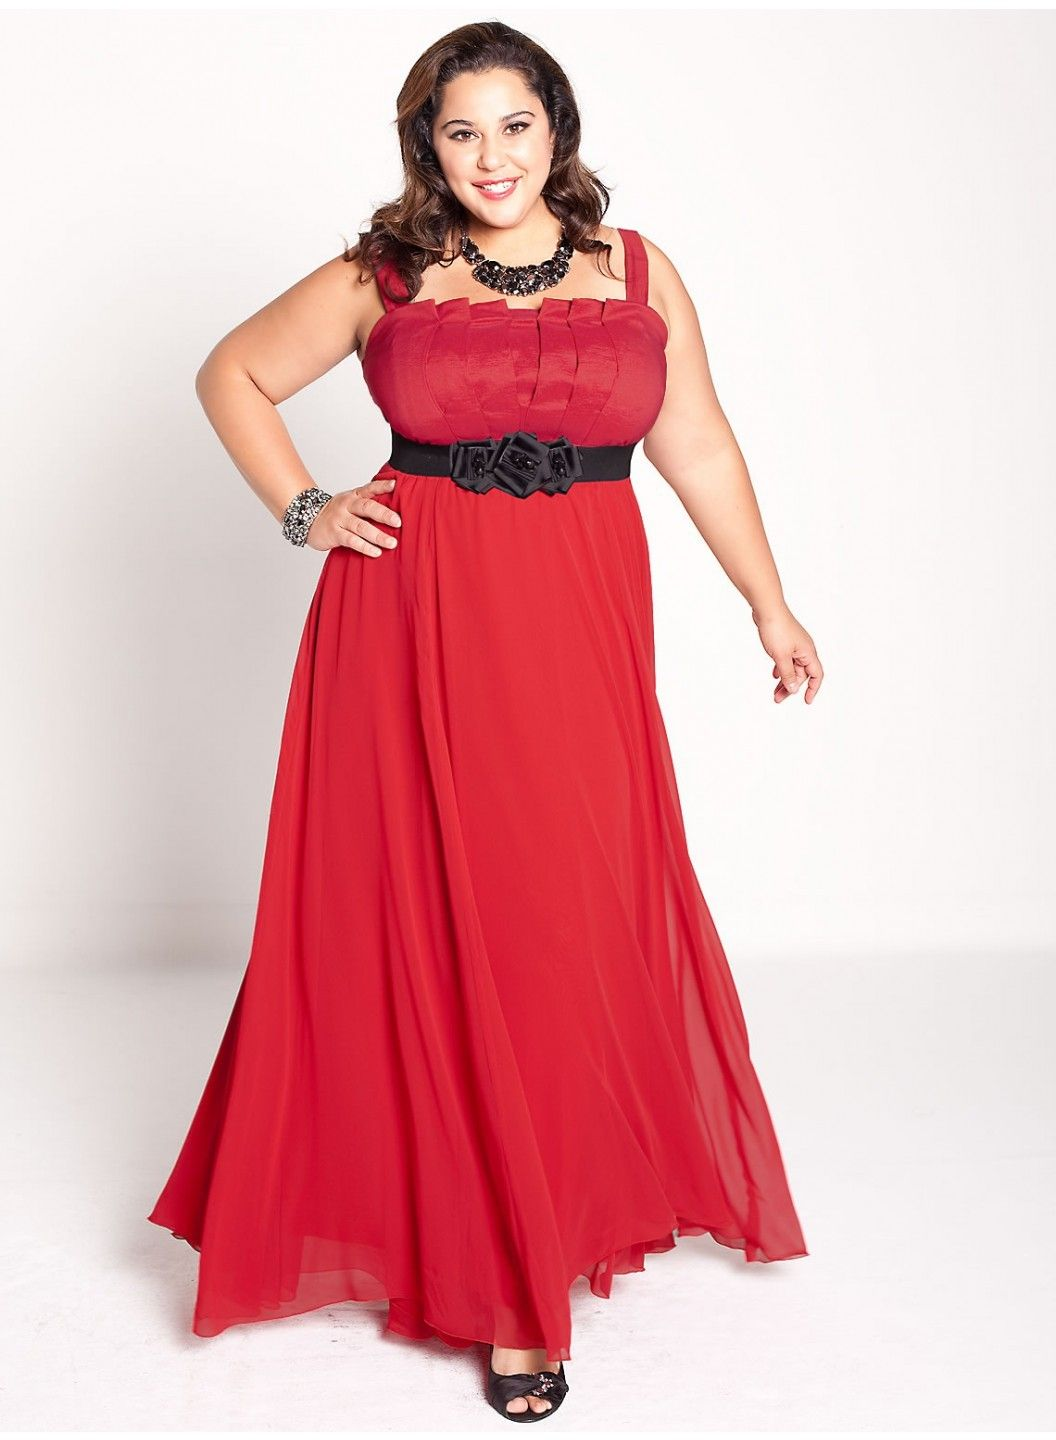 Robe longue chic grande taille